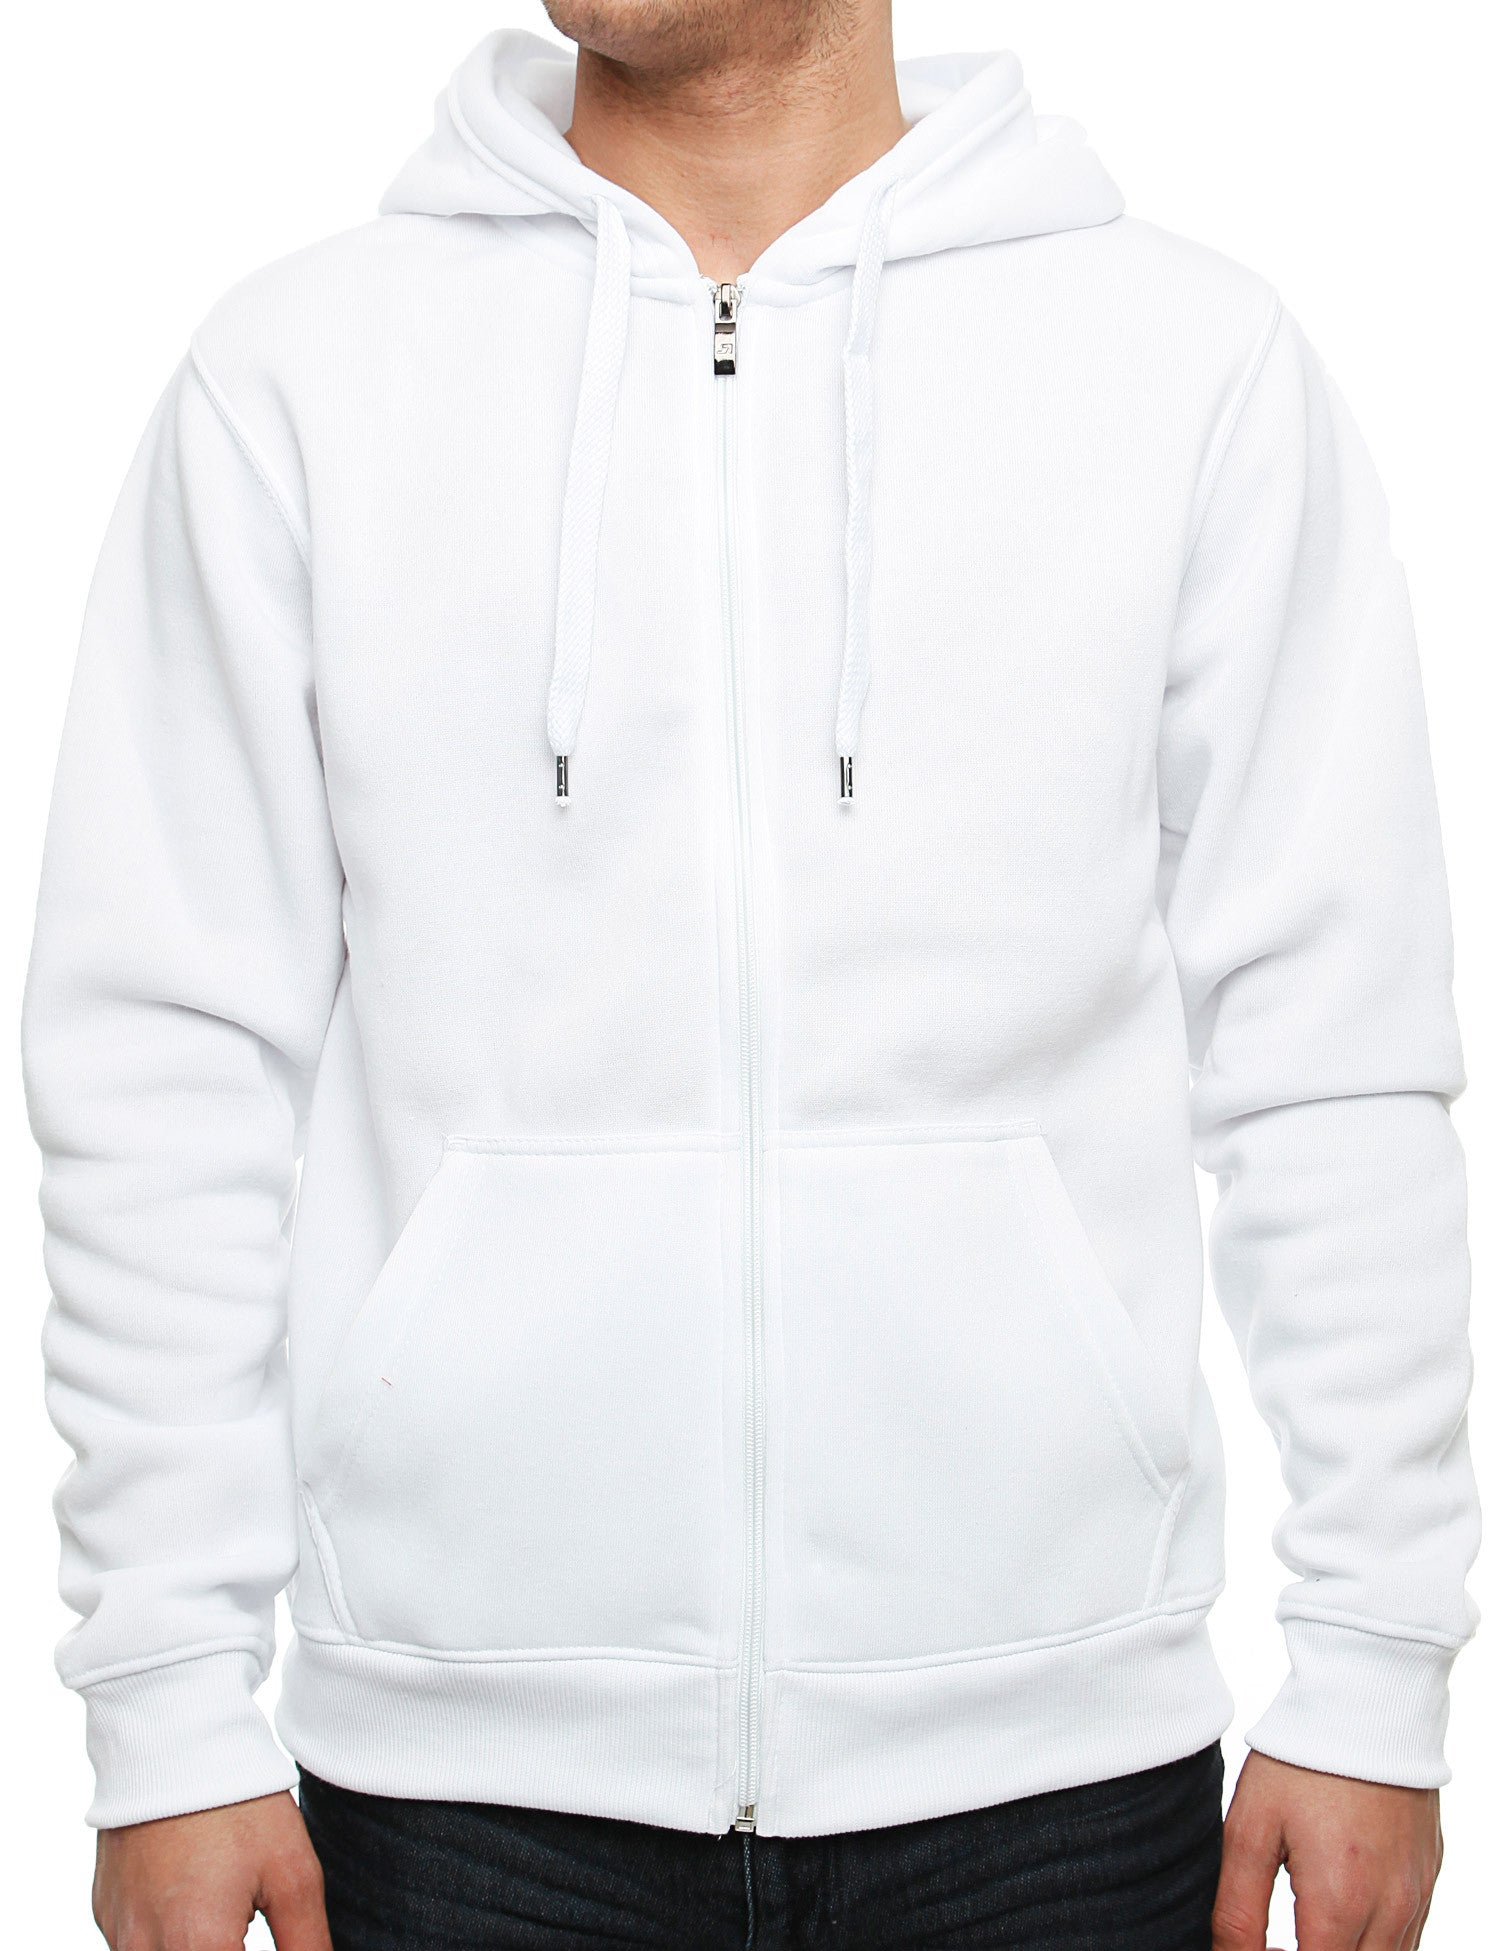 Southpole Zip Hoody 9001-1501S White